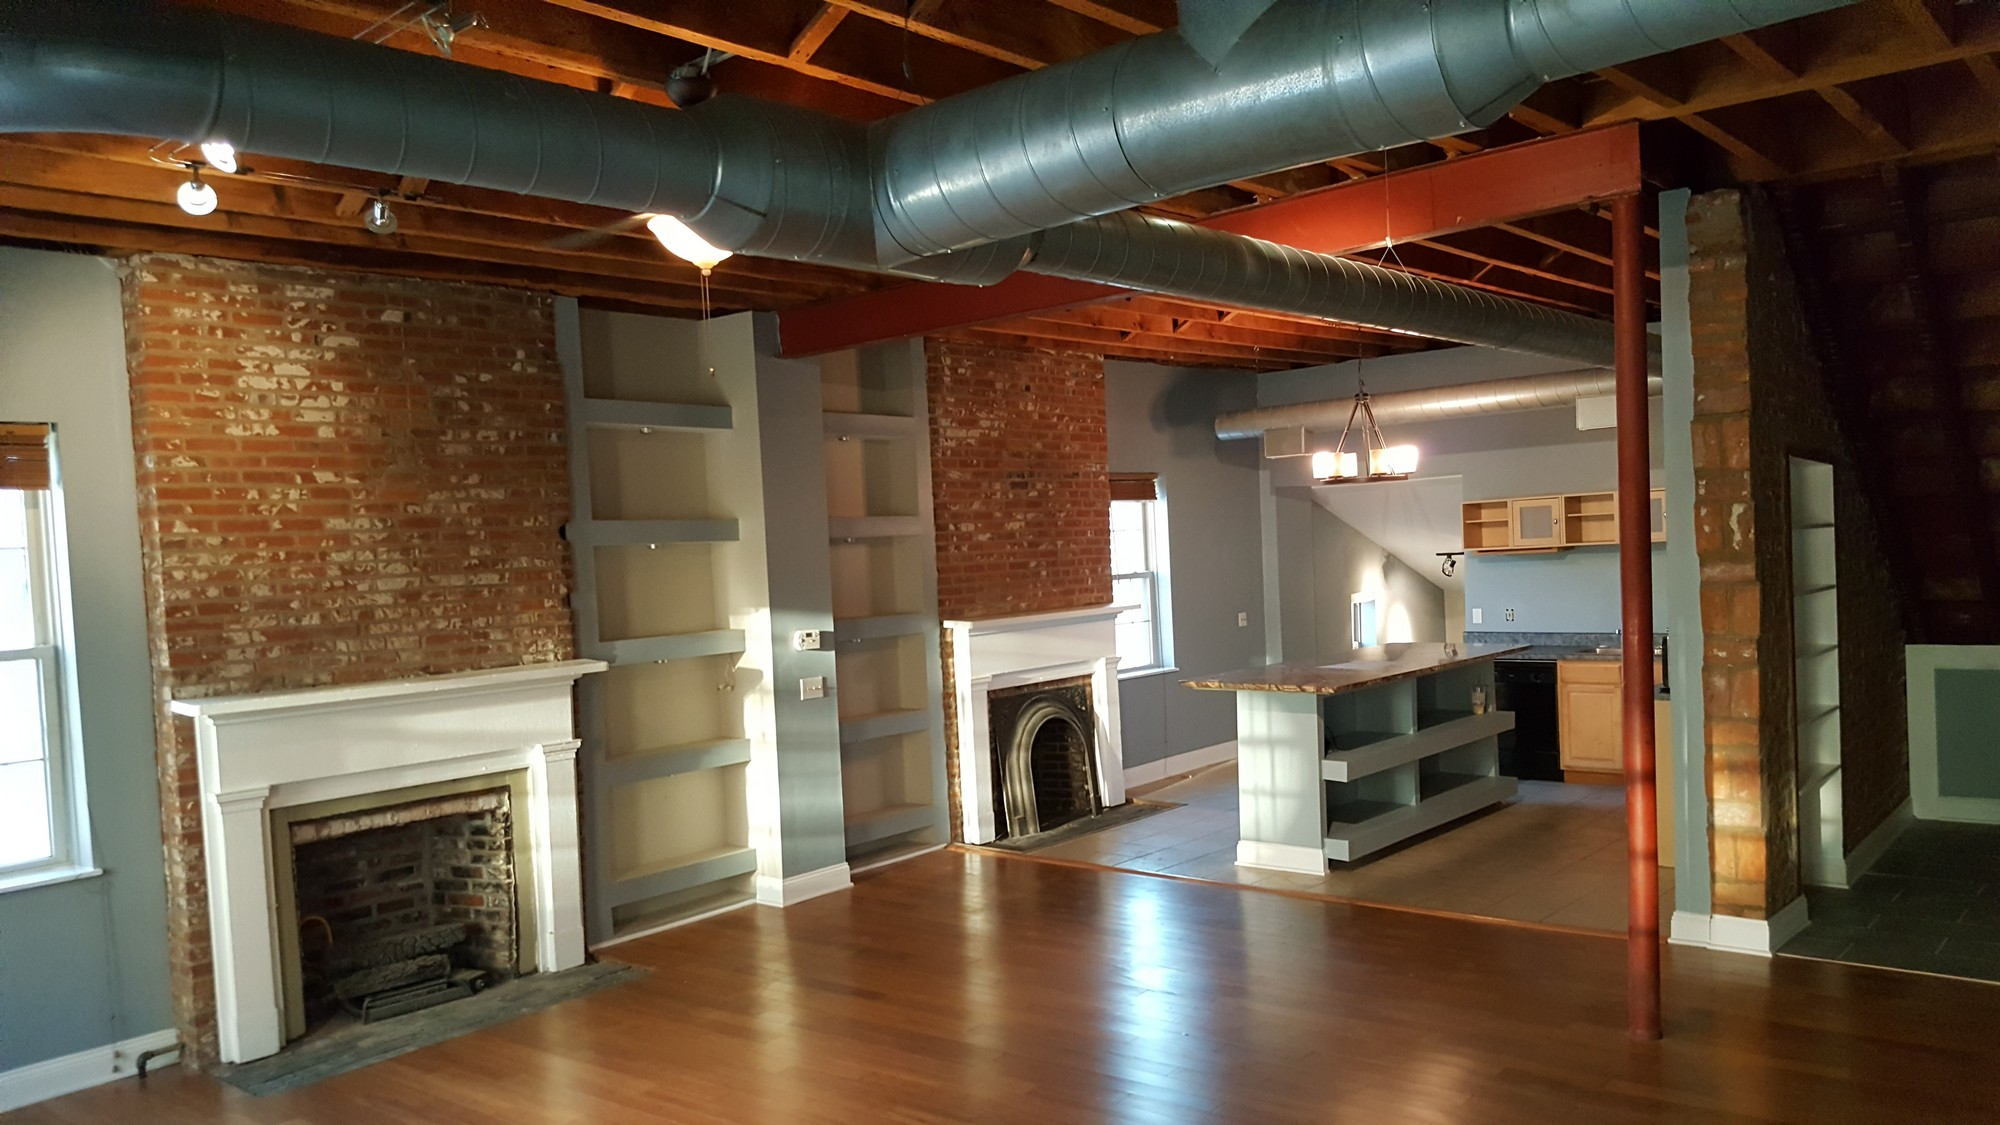 Cost To Remodel A Kitchen: Remodel STL Begins Saint Louis, MO-Based Construction